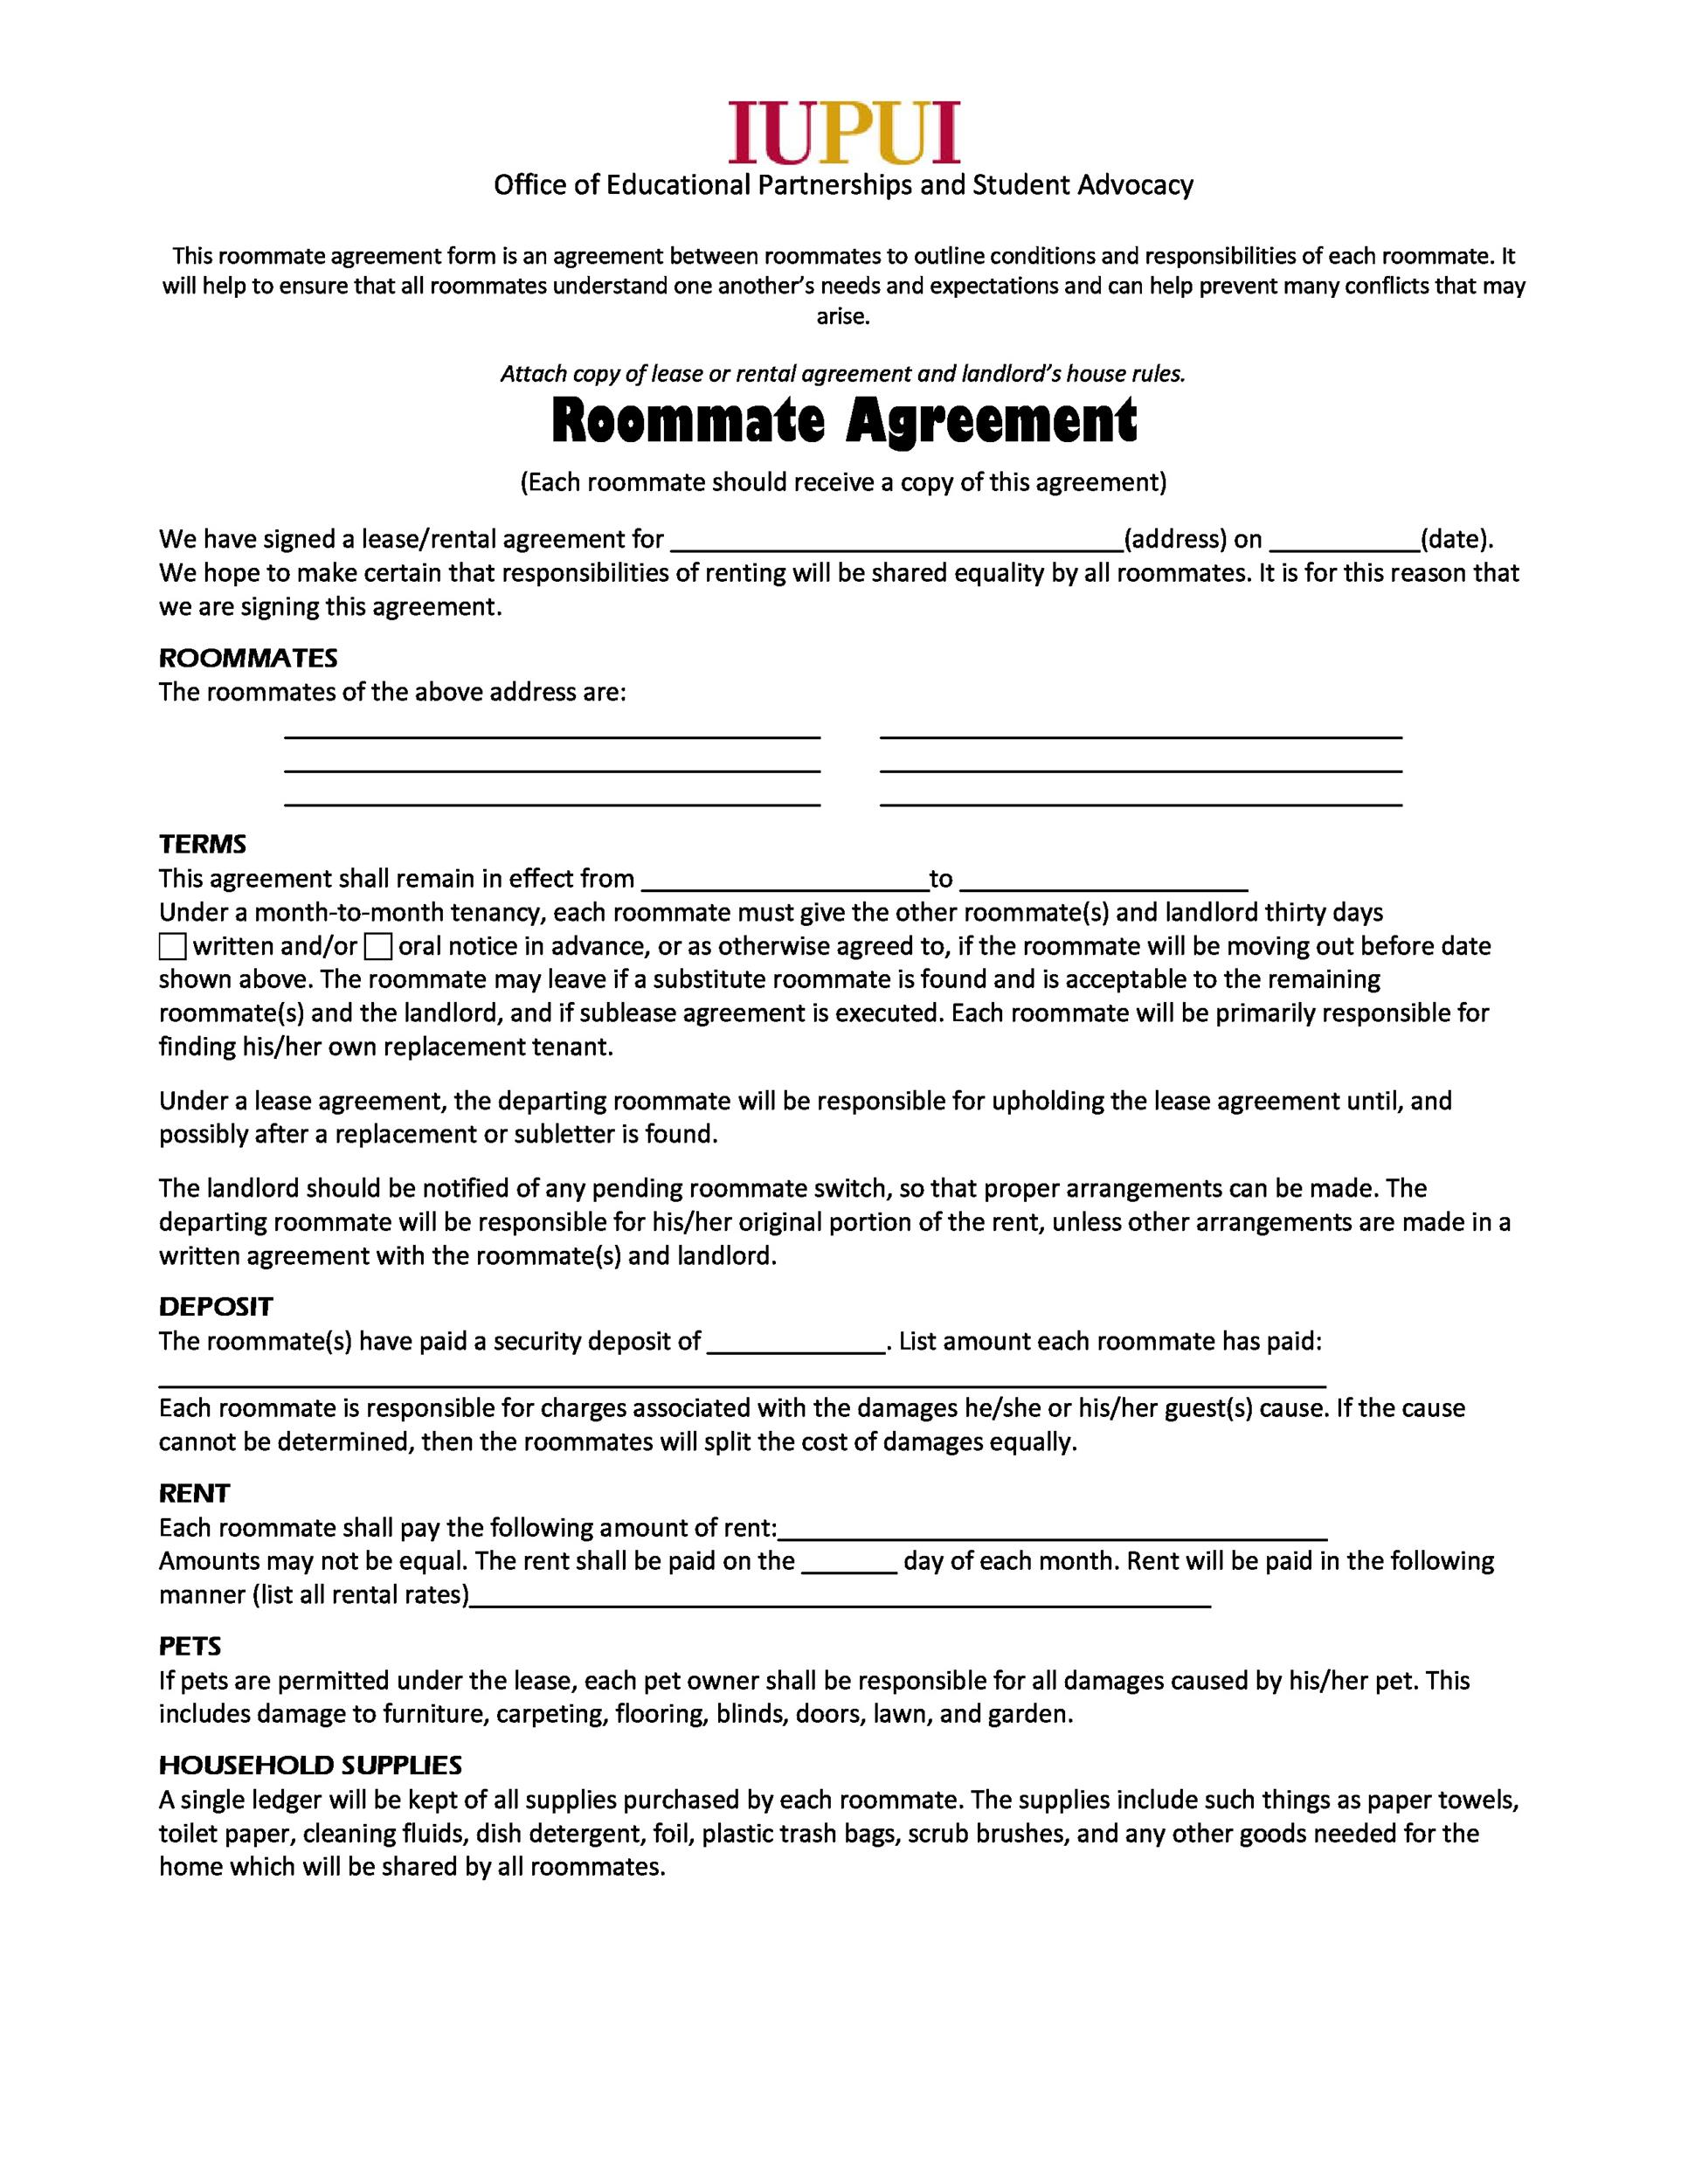 40 free roommate agreement templates forms word pdf. Black Bedroom Furniture Sets. Home Design Ideas